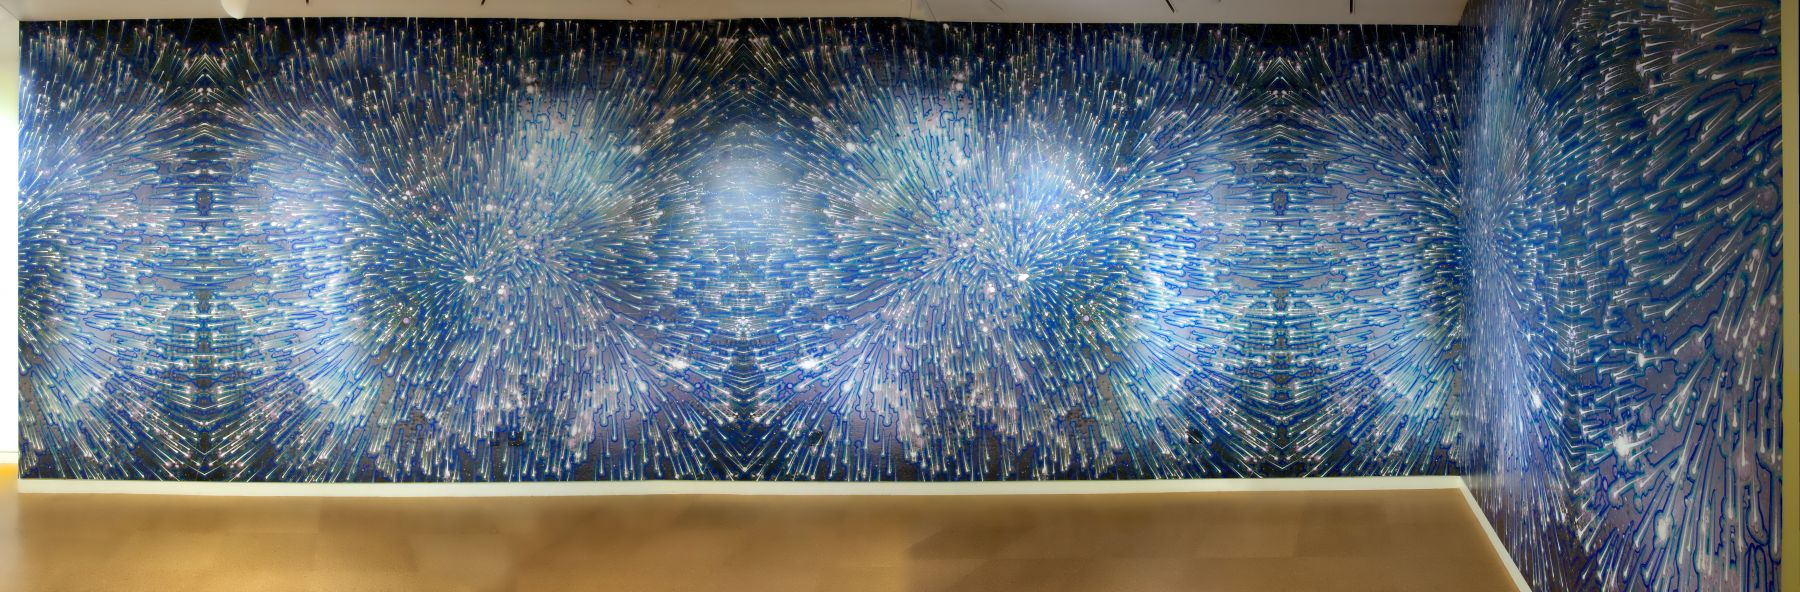 Barbara Takenaga, Space | 42